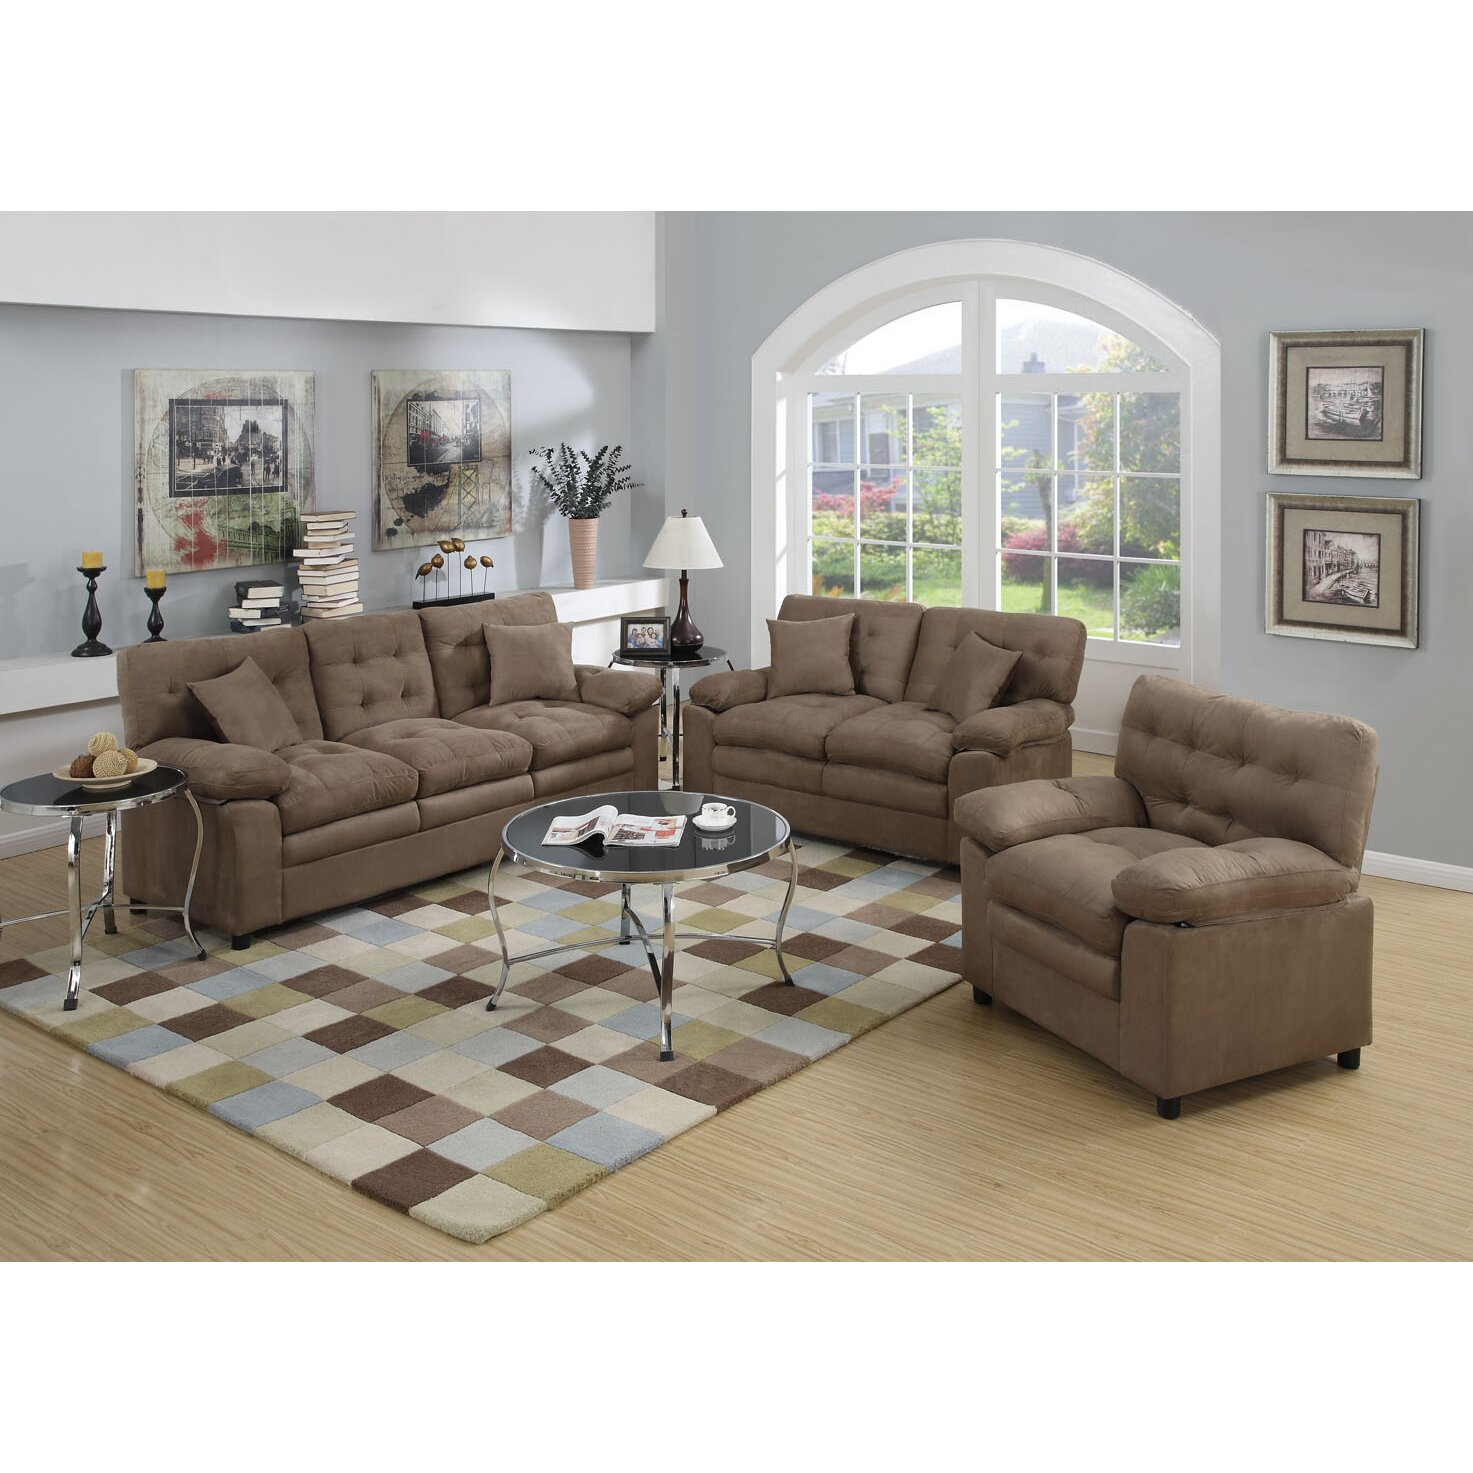 Poundex bobkona colona 3 piece living room set reviews for Drawing room setting